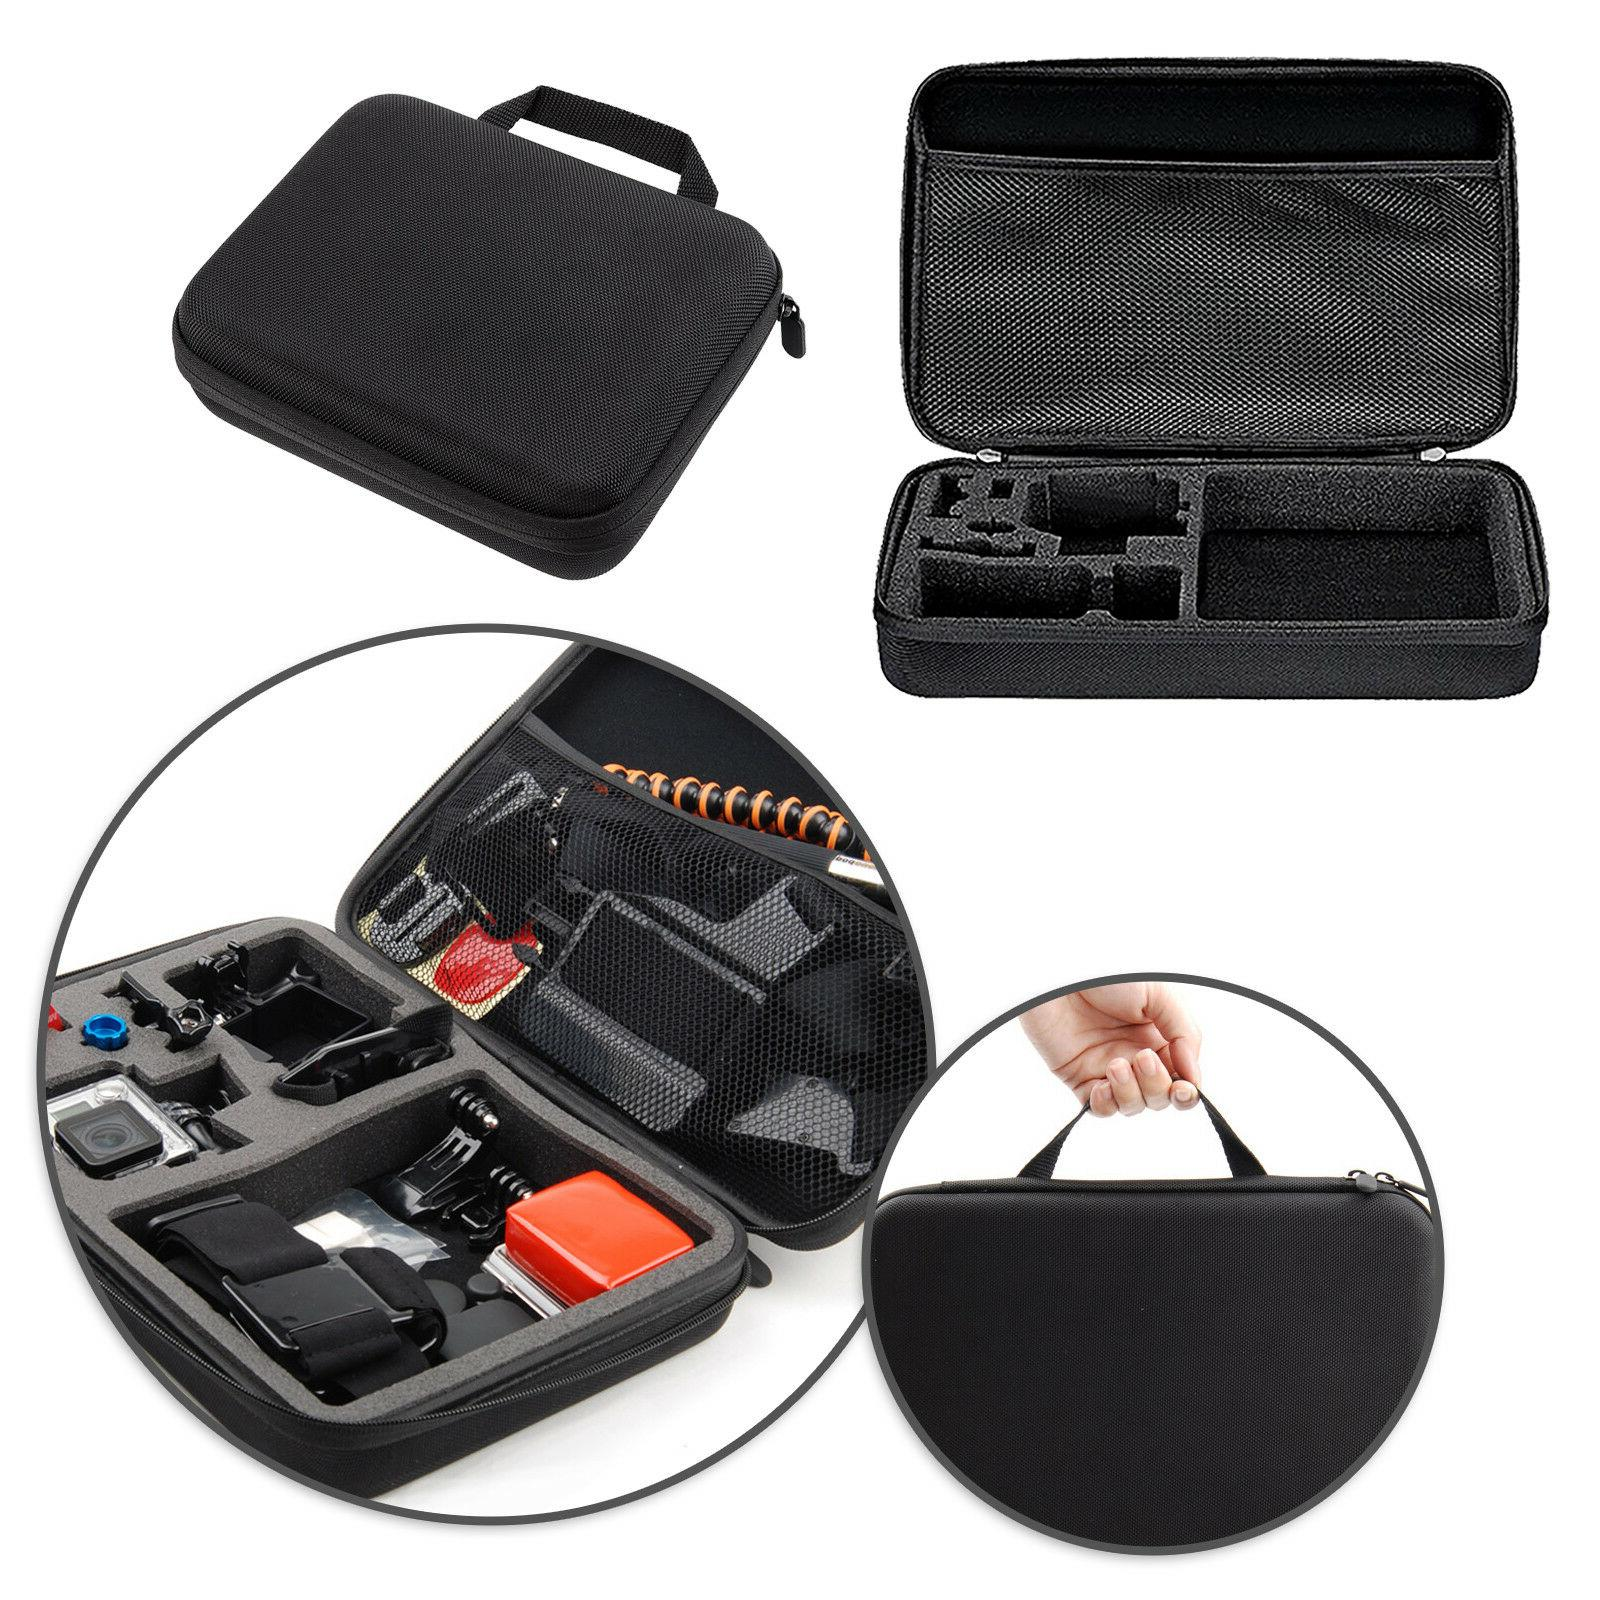 Travel Carry Case Bag for GoPro Hero 1 2 3 3 4 SJ4000 Action